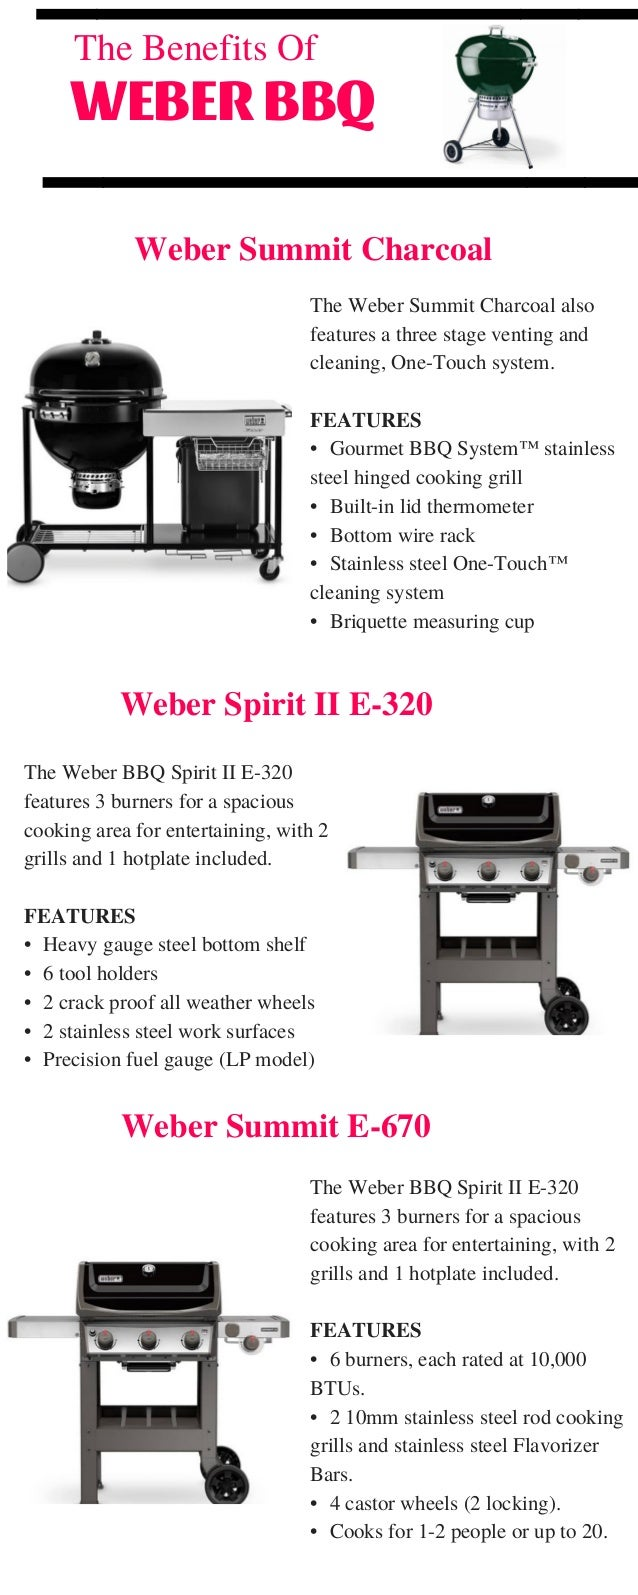 The Benefits Of Weber Bbq